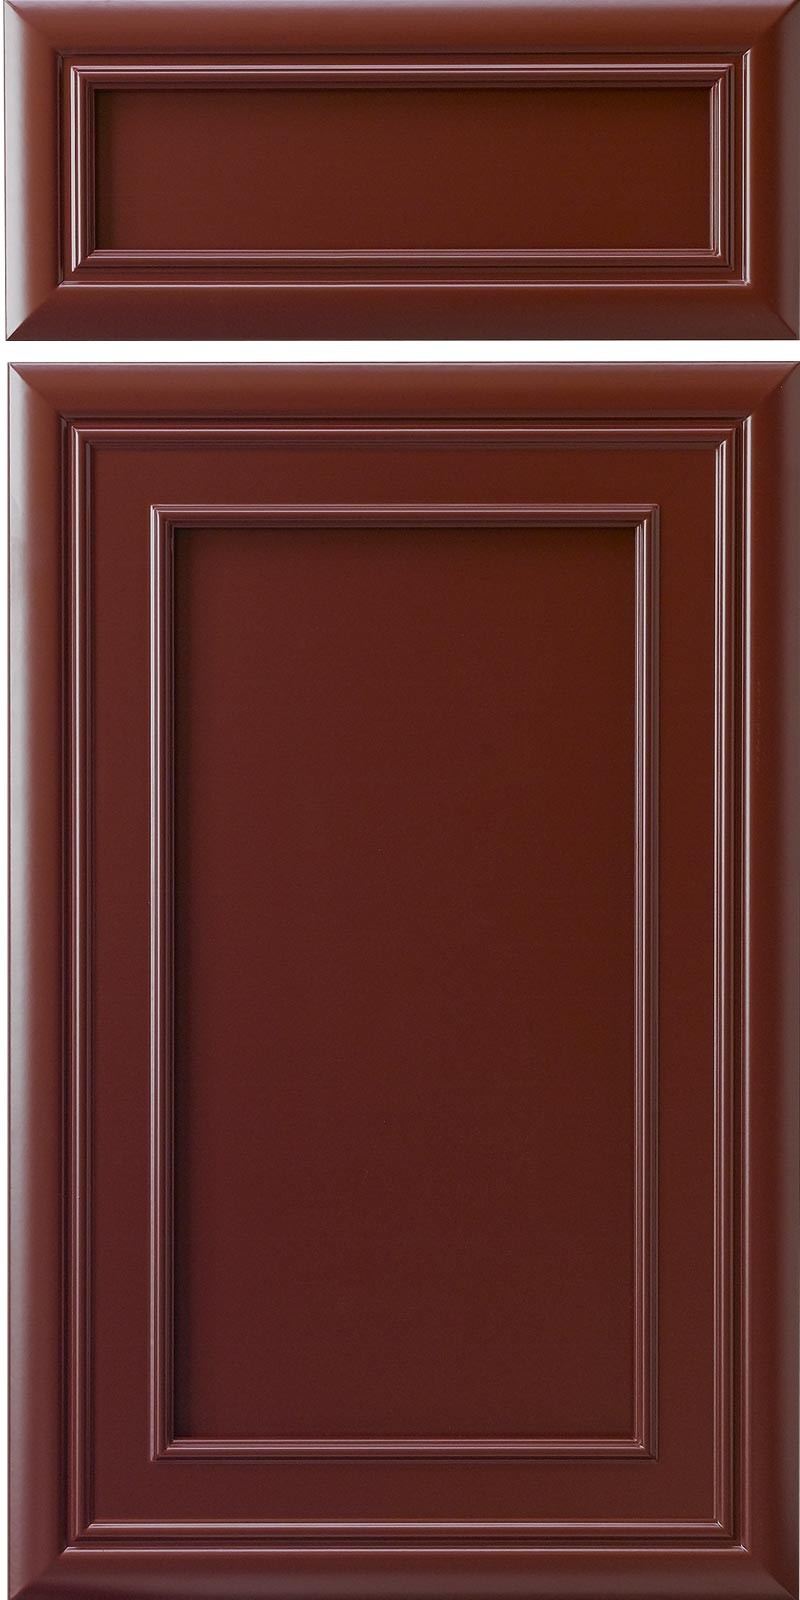 Medium Density Fiberboard Door ~ Crp medium density fiberboard materials cabinet